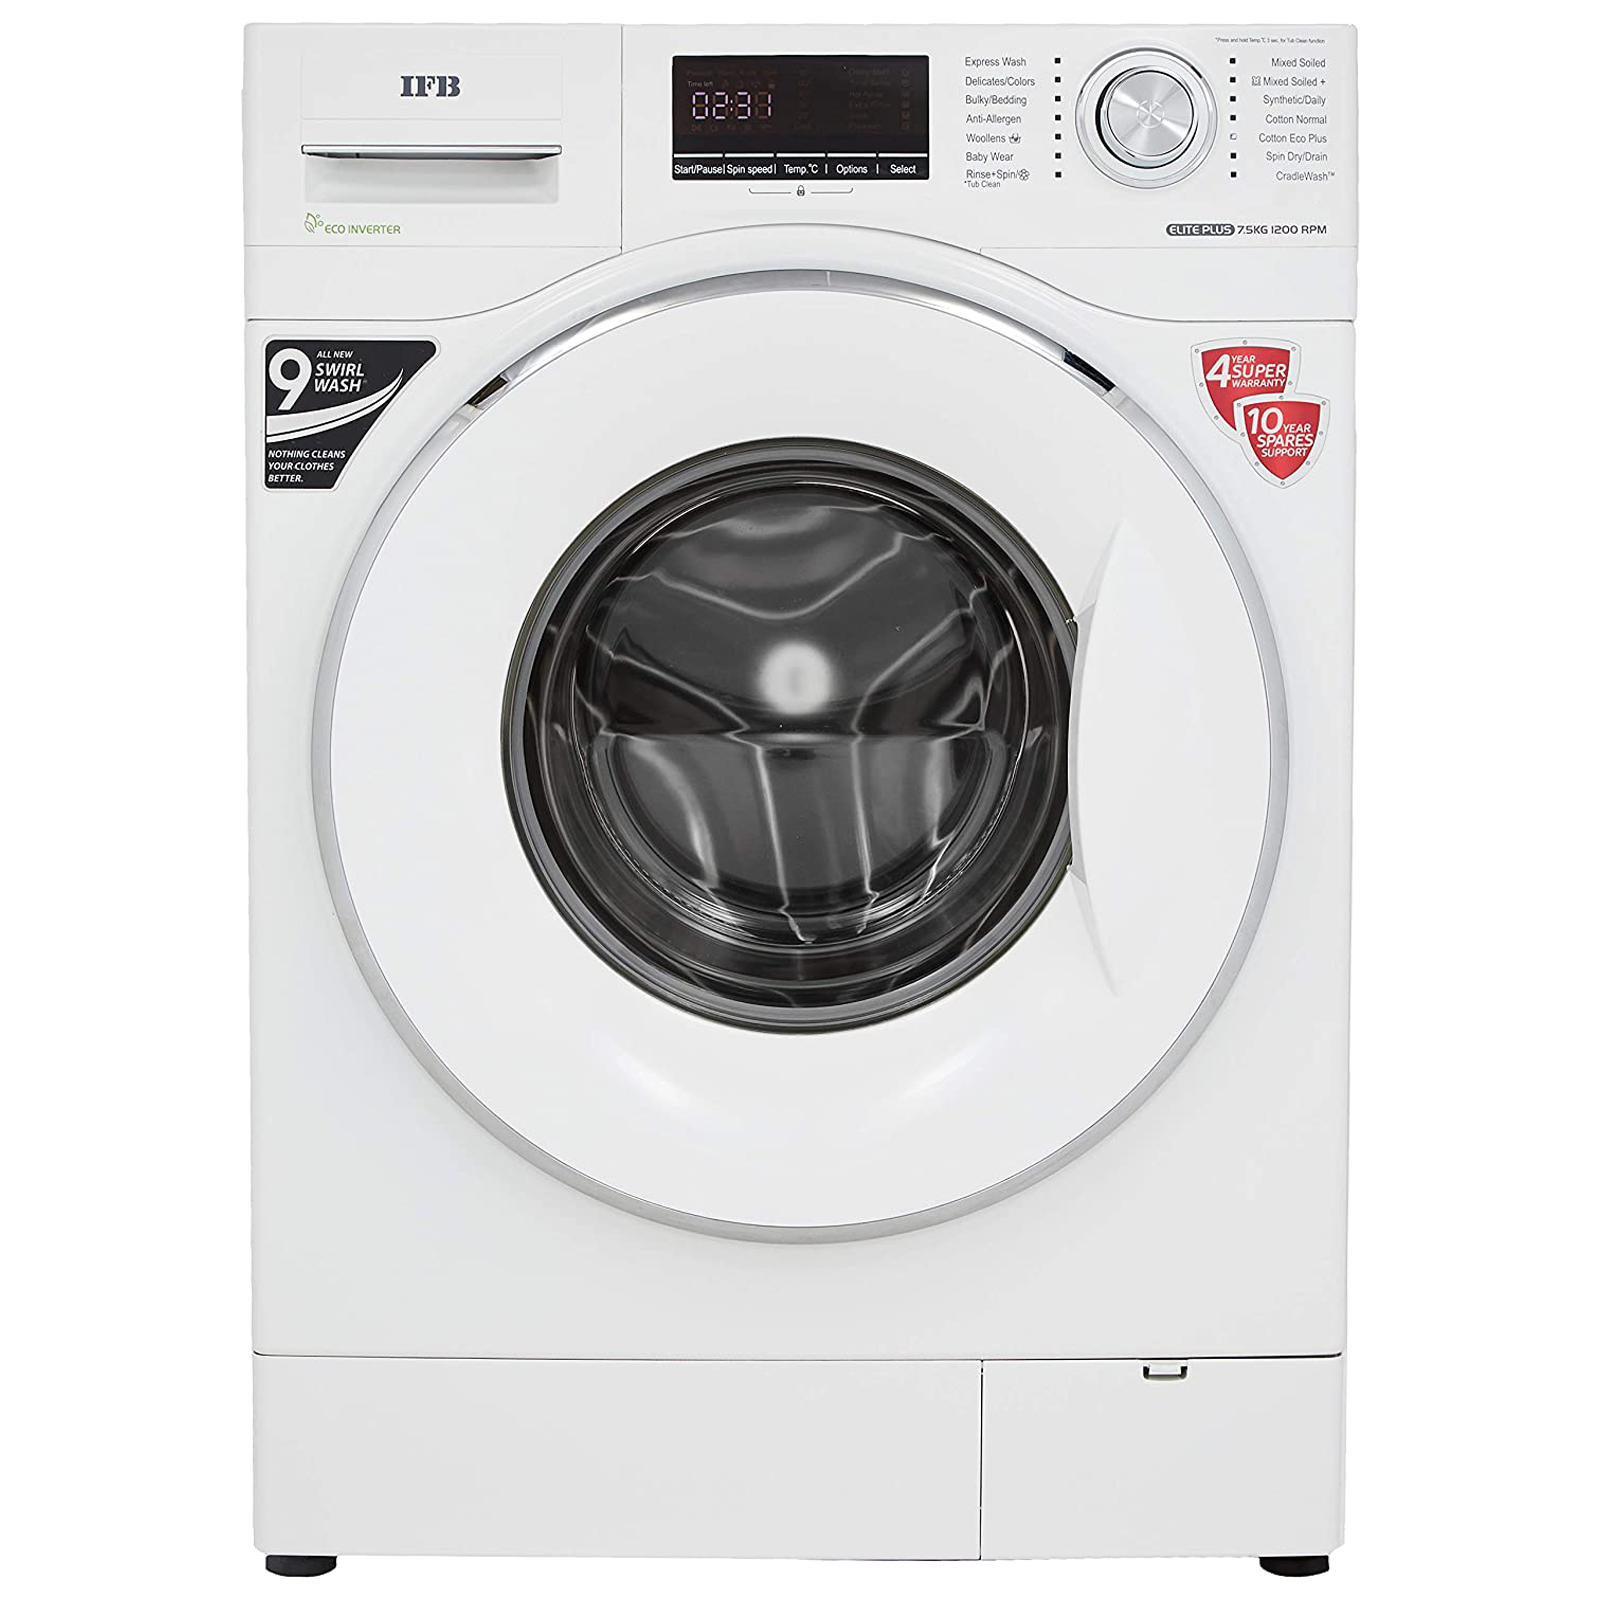 IFB Elite Plus VX ID 7.5 kg 5 Star Fully Automatic Front Load Washing Machine (Built-in Heater, White)_1